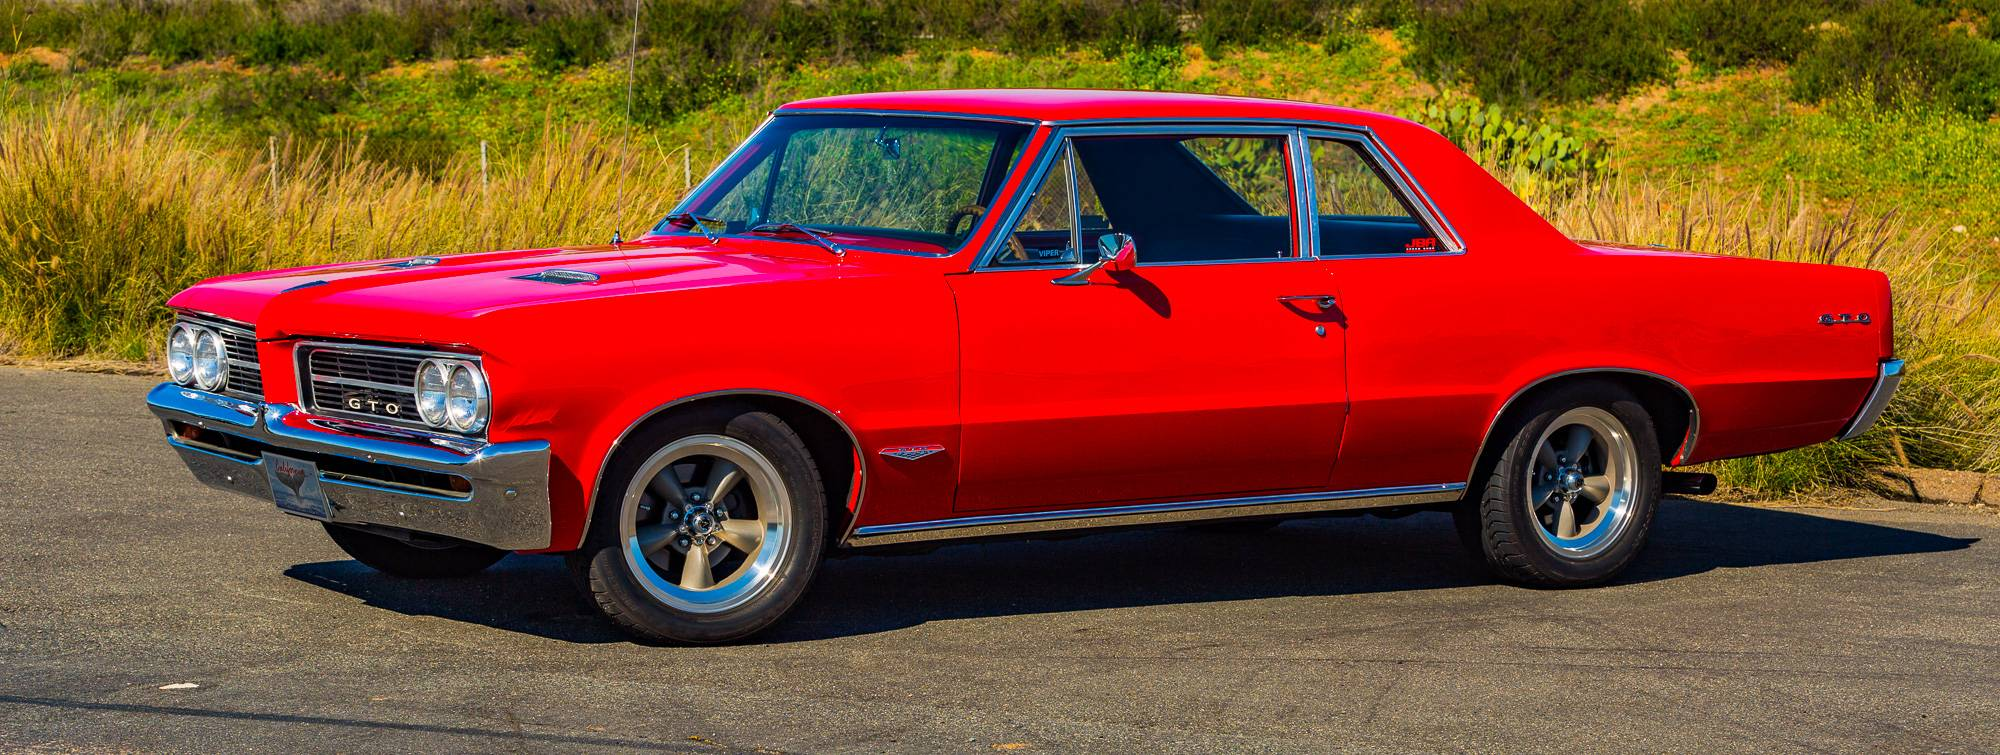 1964 Pontiac GTO Coupe, Red, American Racing Wheels, Black interior, Classic Muscle Car, BFGoodrich Tires